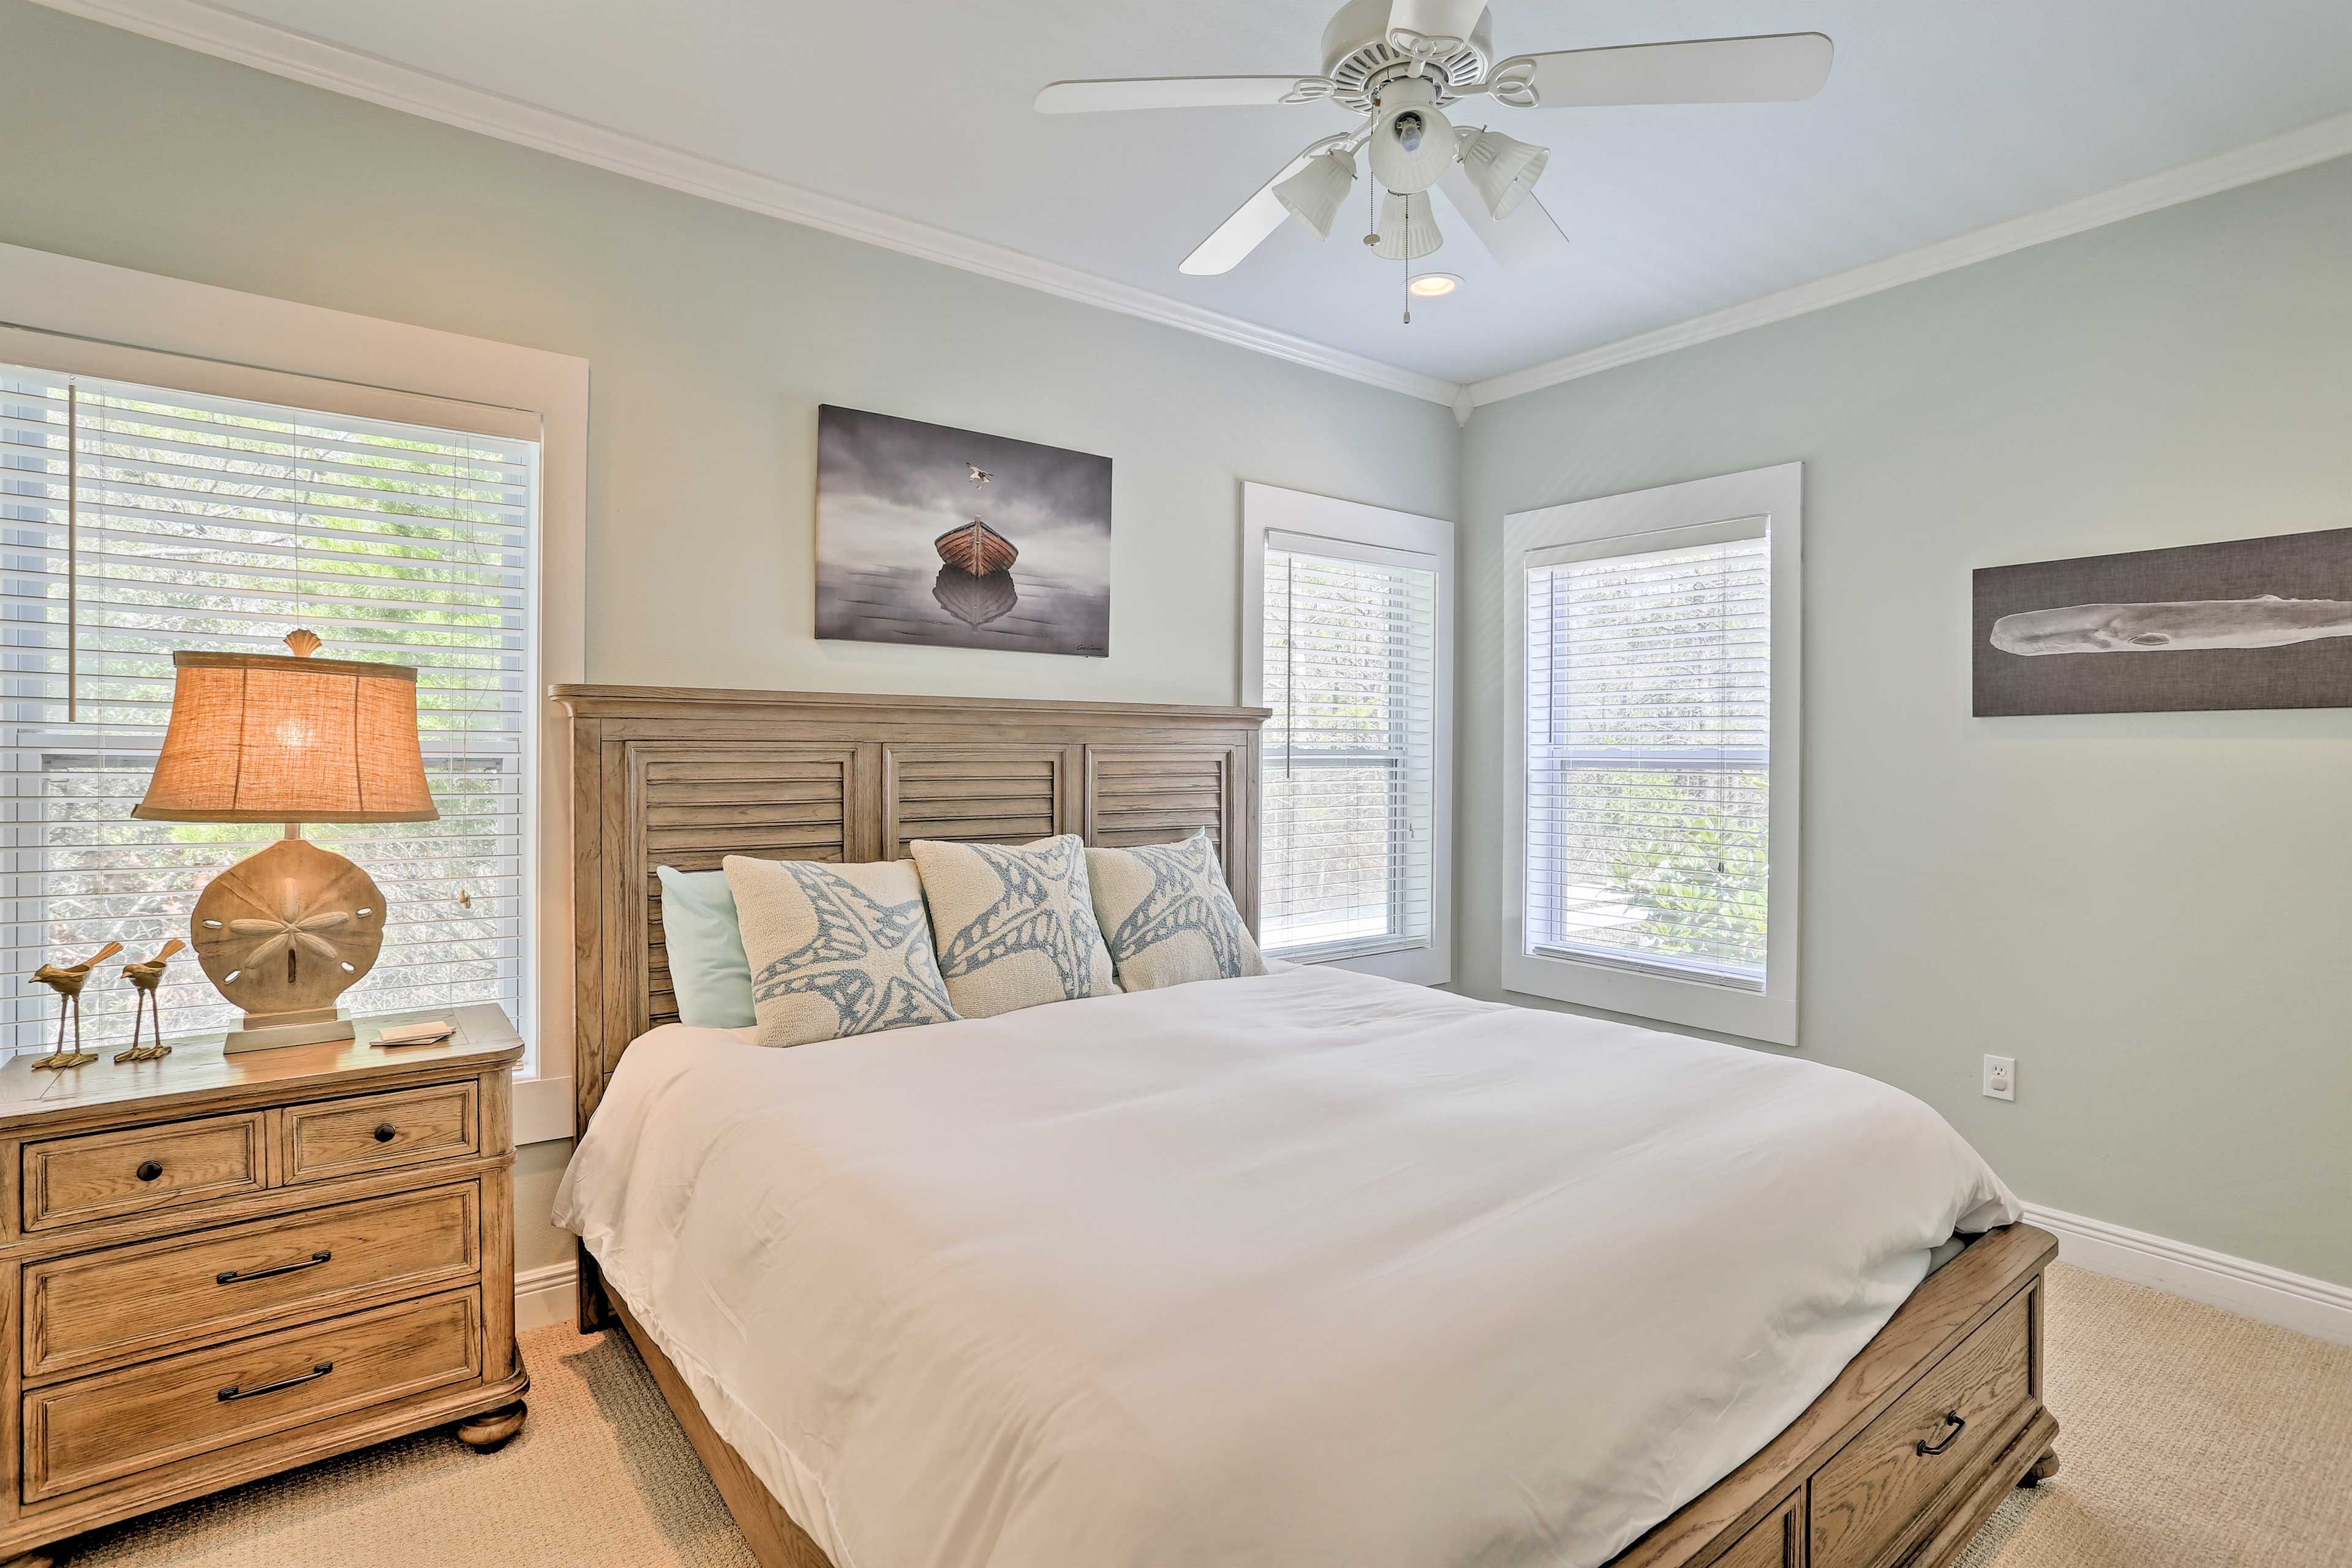 Beach-themed furnishings adorn all 3 bedrooms.